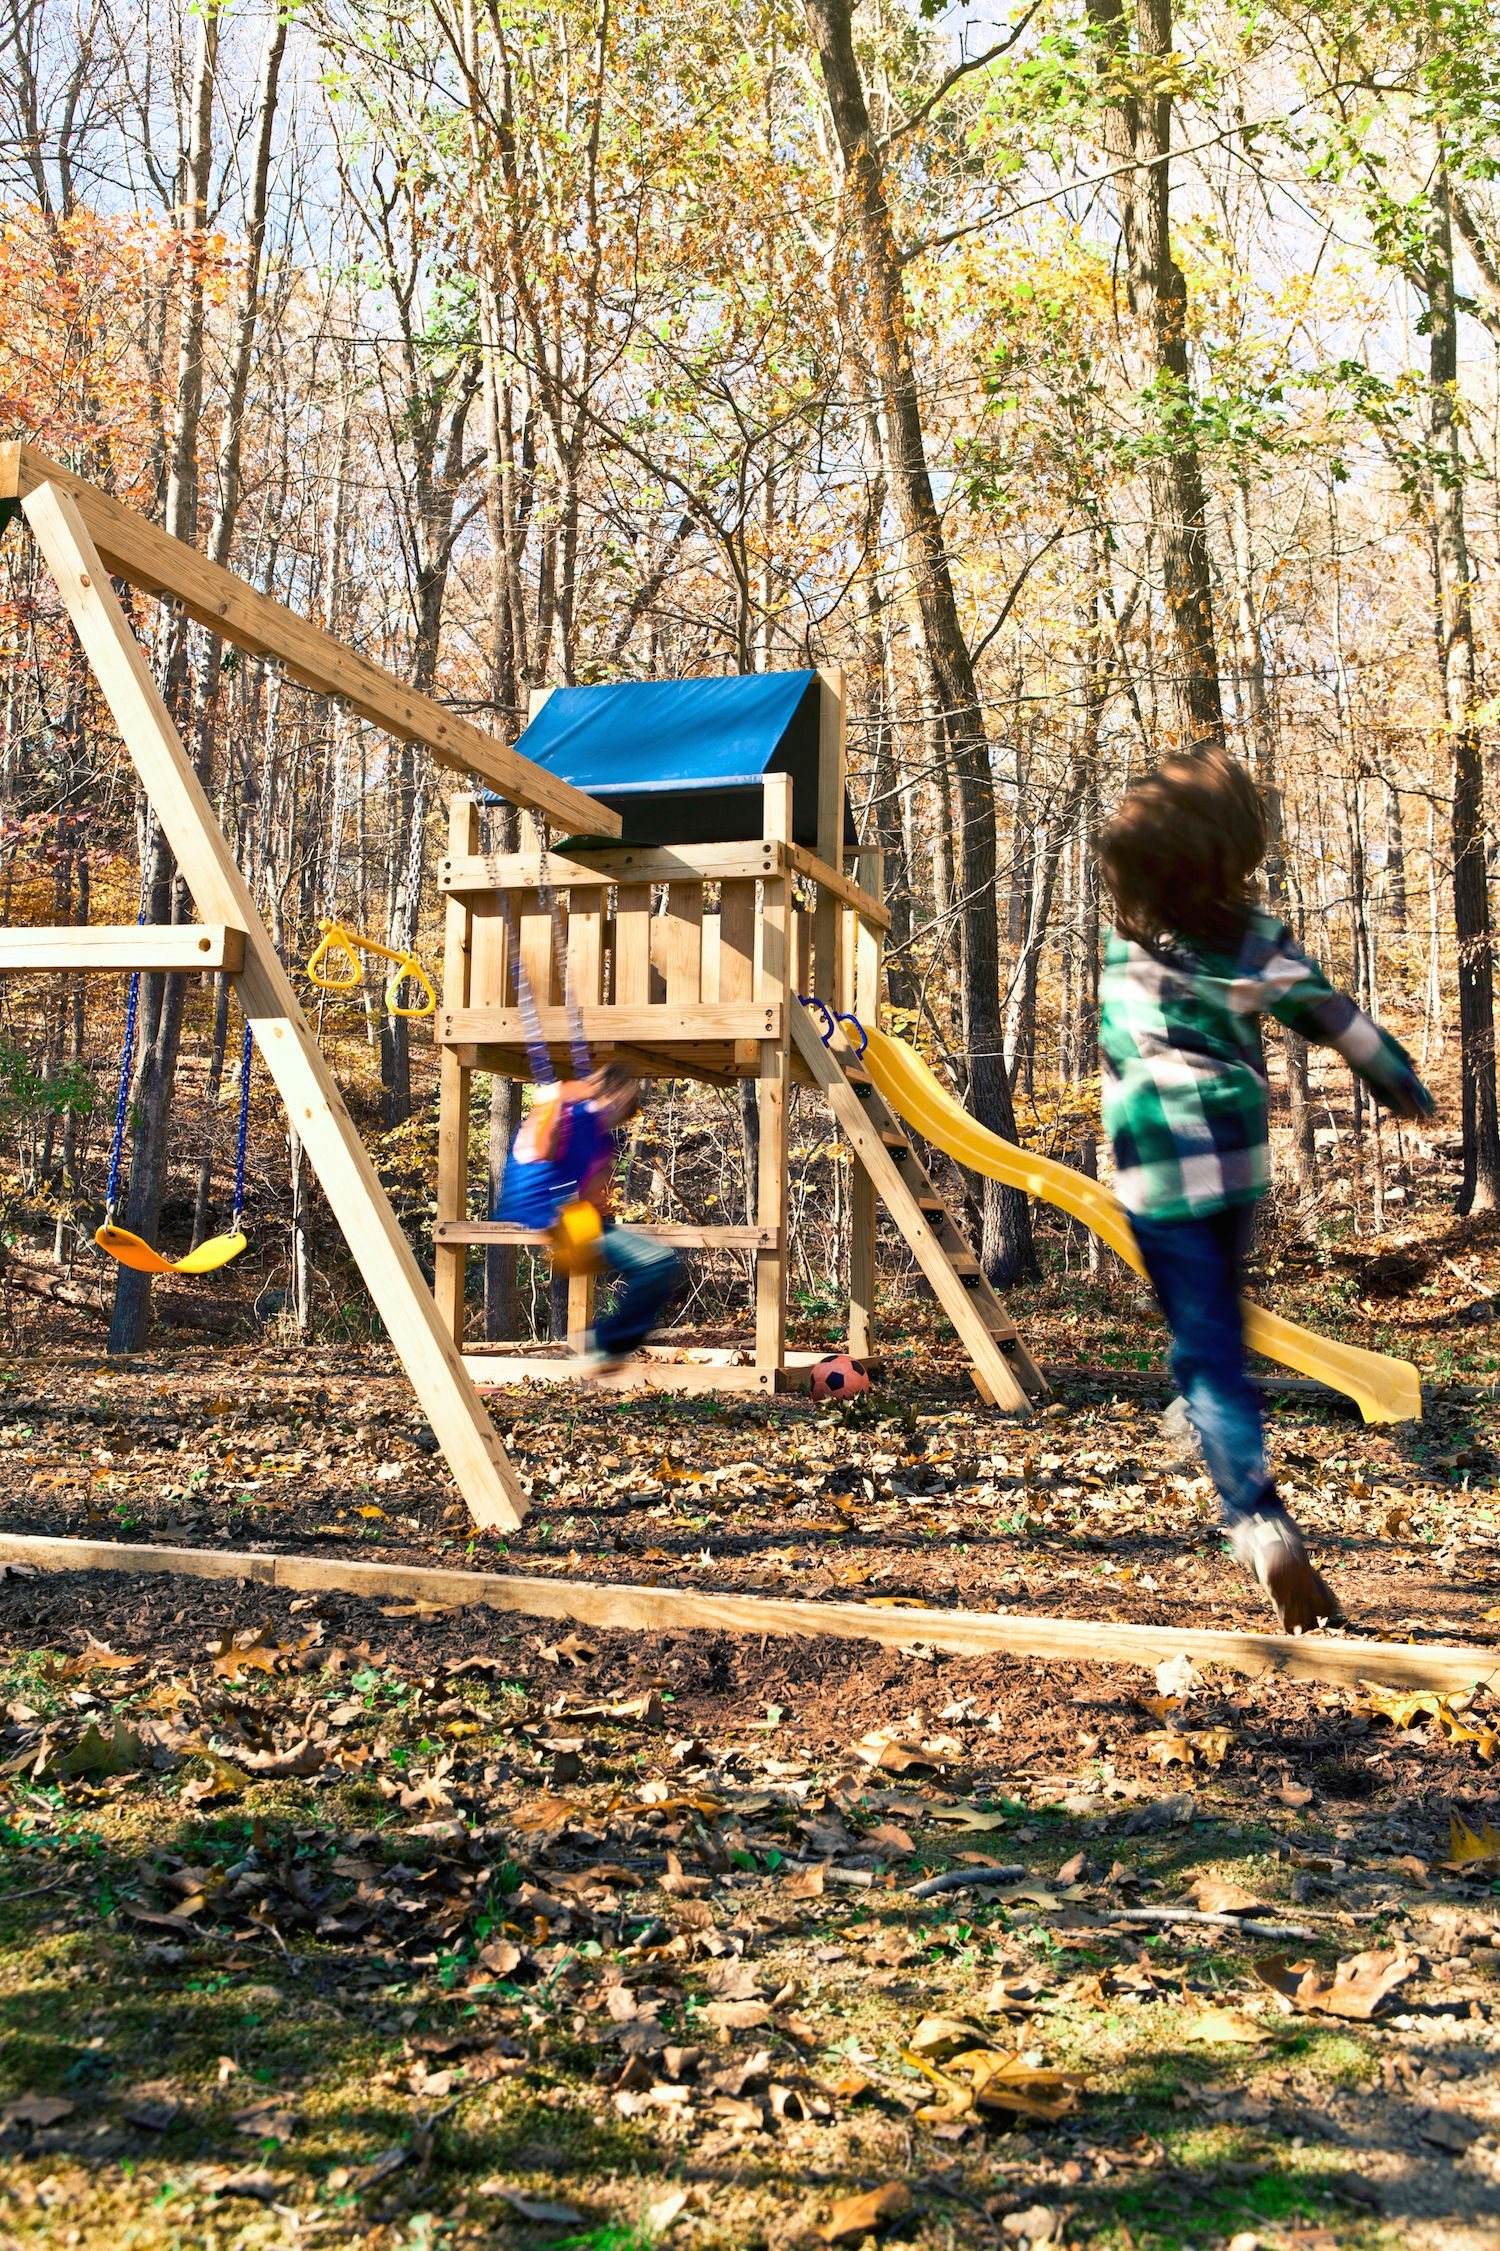 Easy Wooden Swing Set Plans How to Build a Swing Set for the Yard